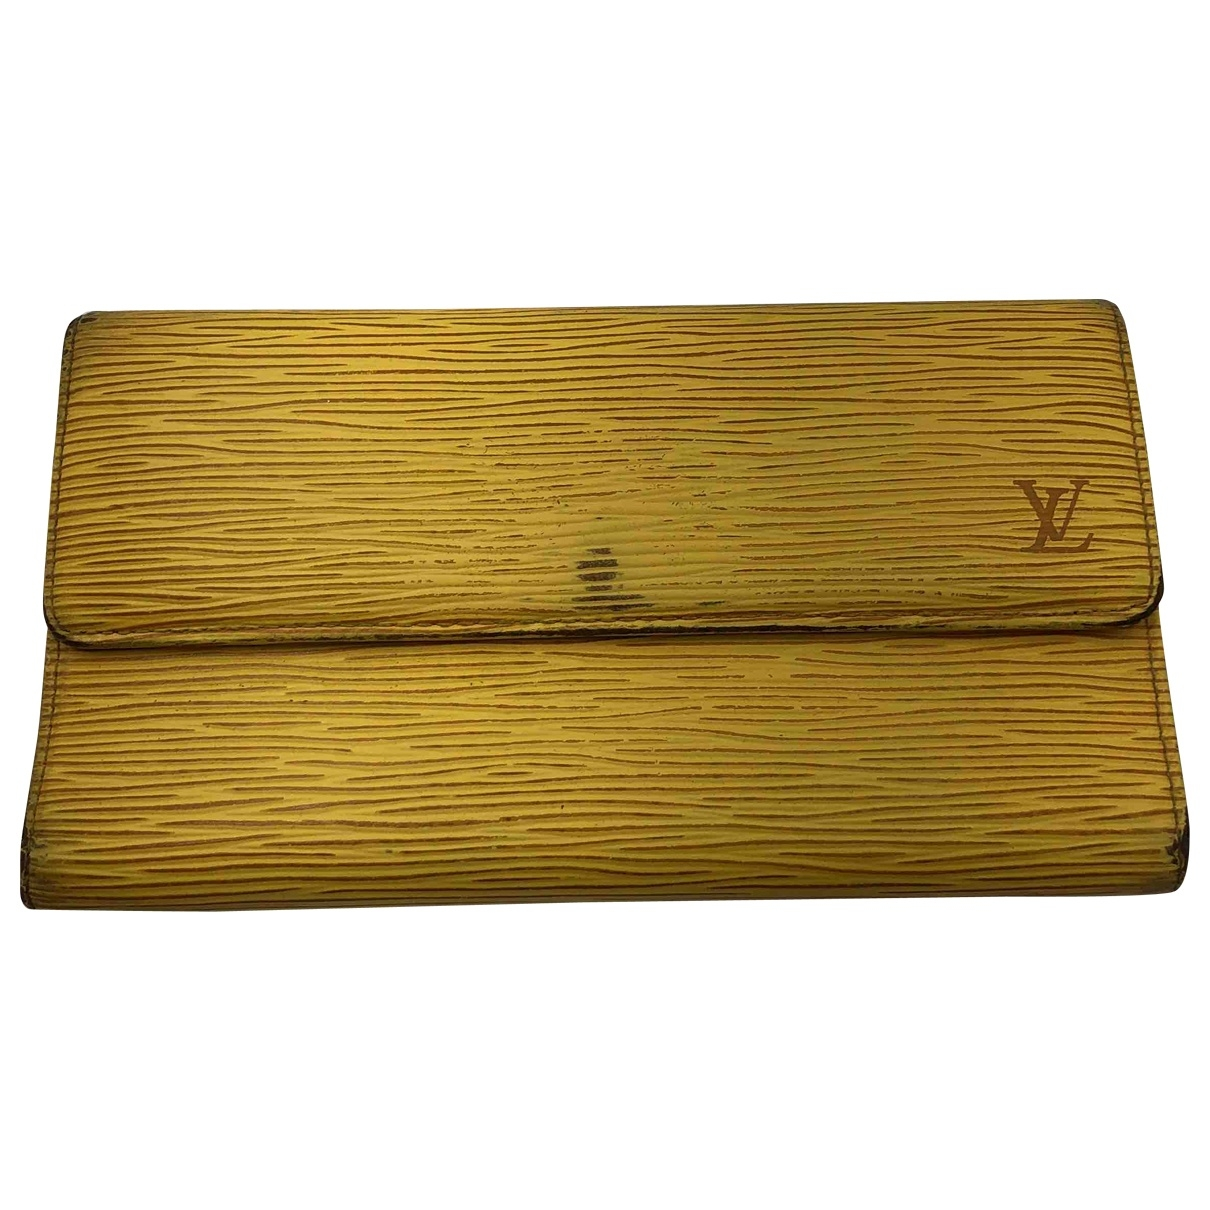 Louis Vuitton \N Yellow Leather wallet for Women \N